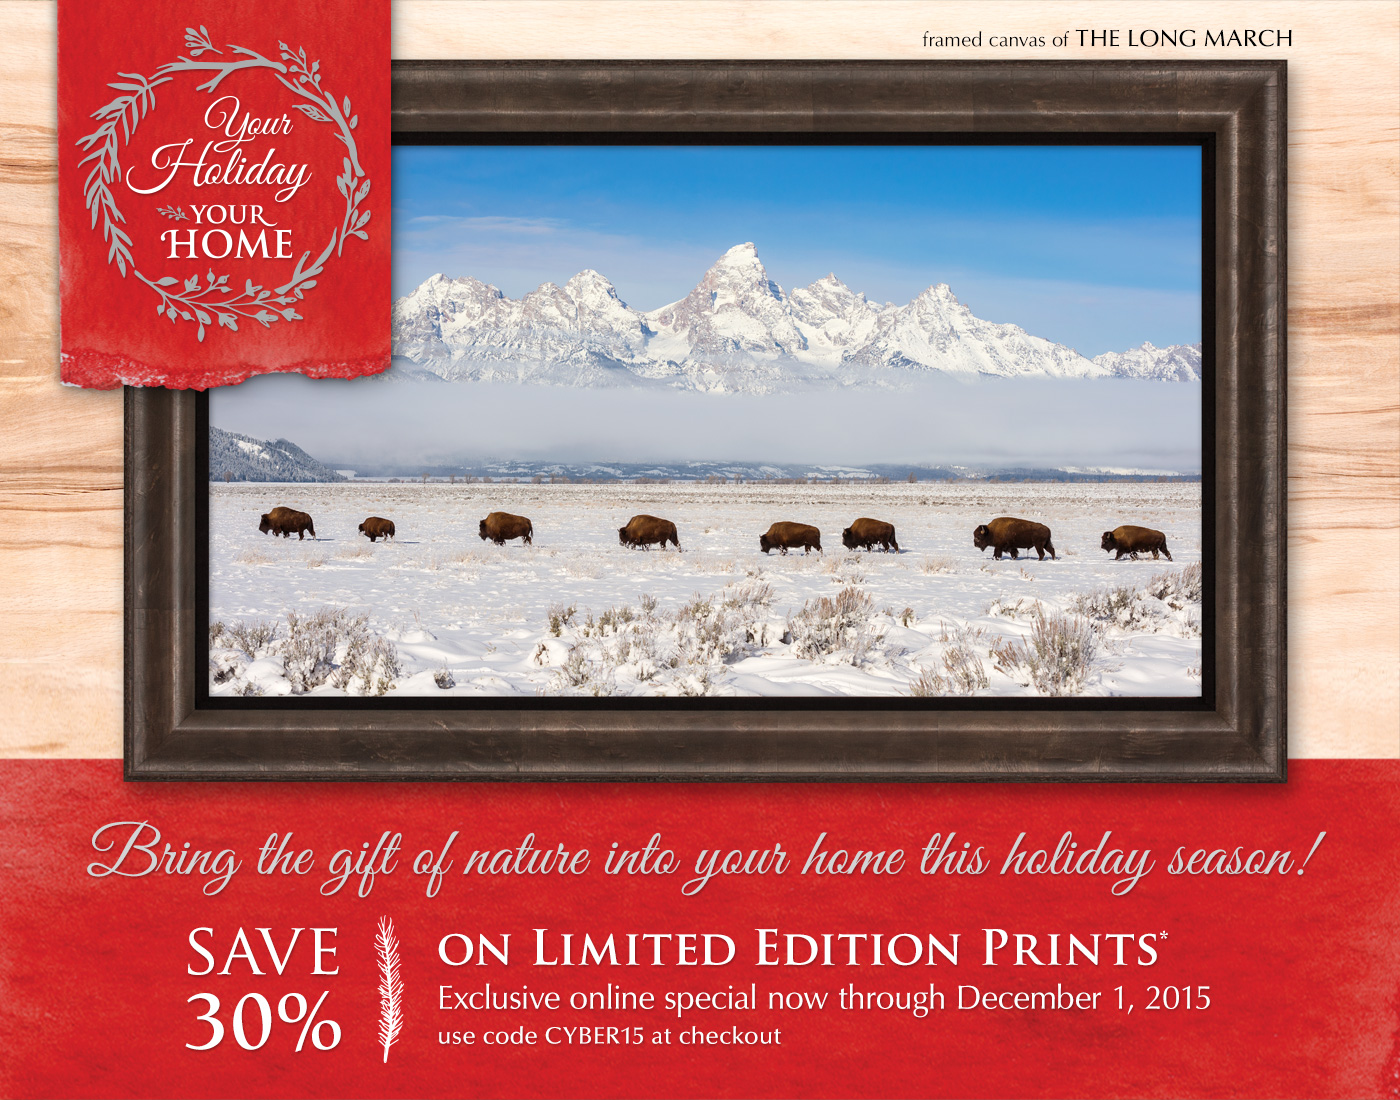 Bring the gift of nature into your home this holiday season!